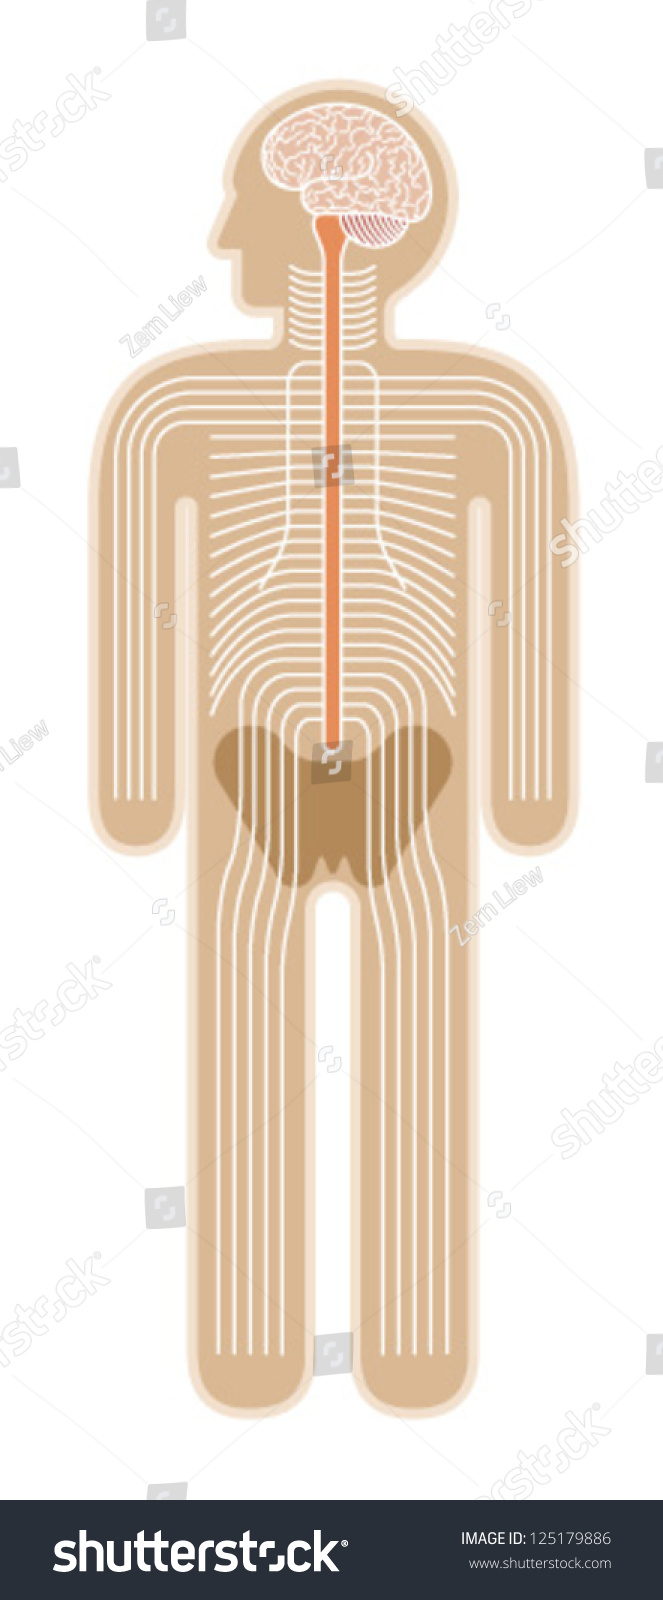 Diagram Human Body Nervous System Stock Vector Royalty Free